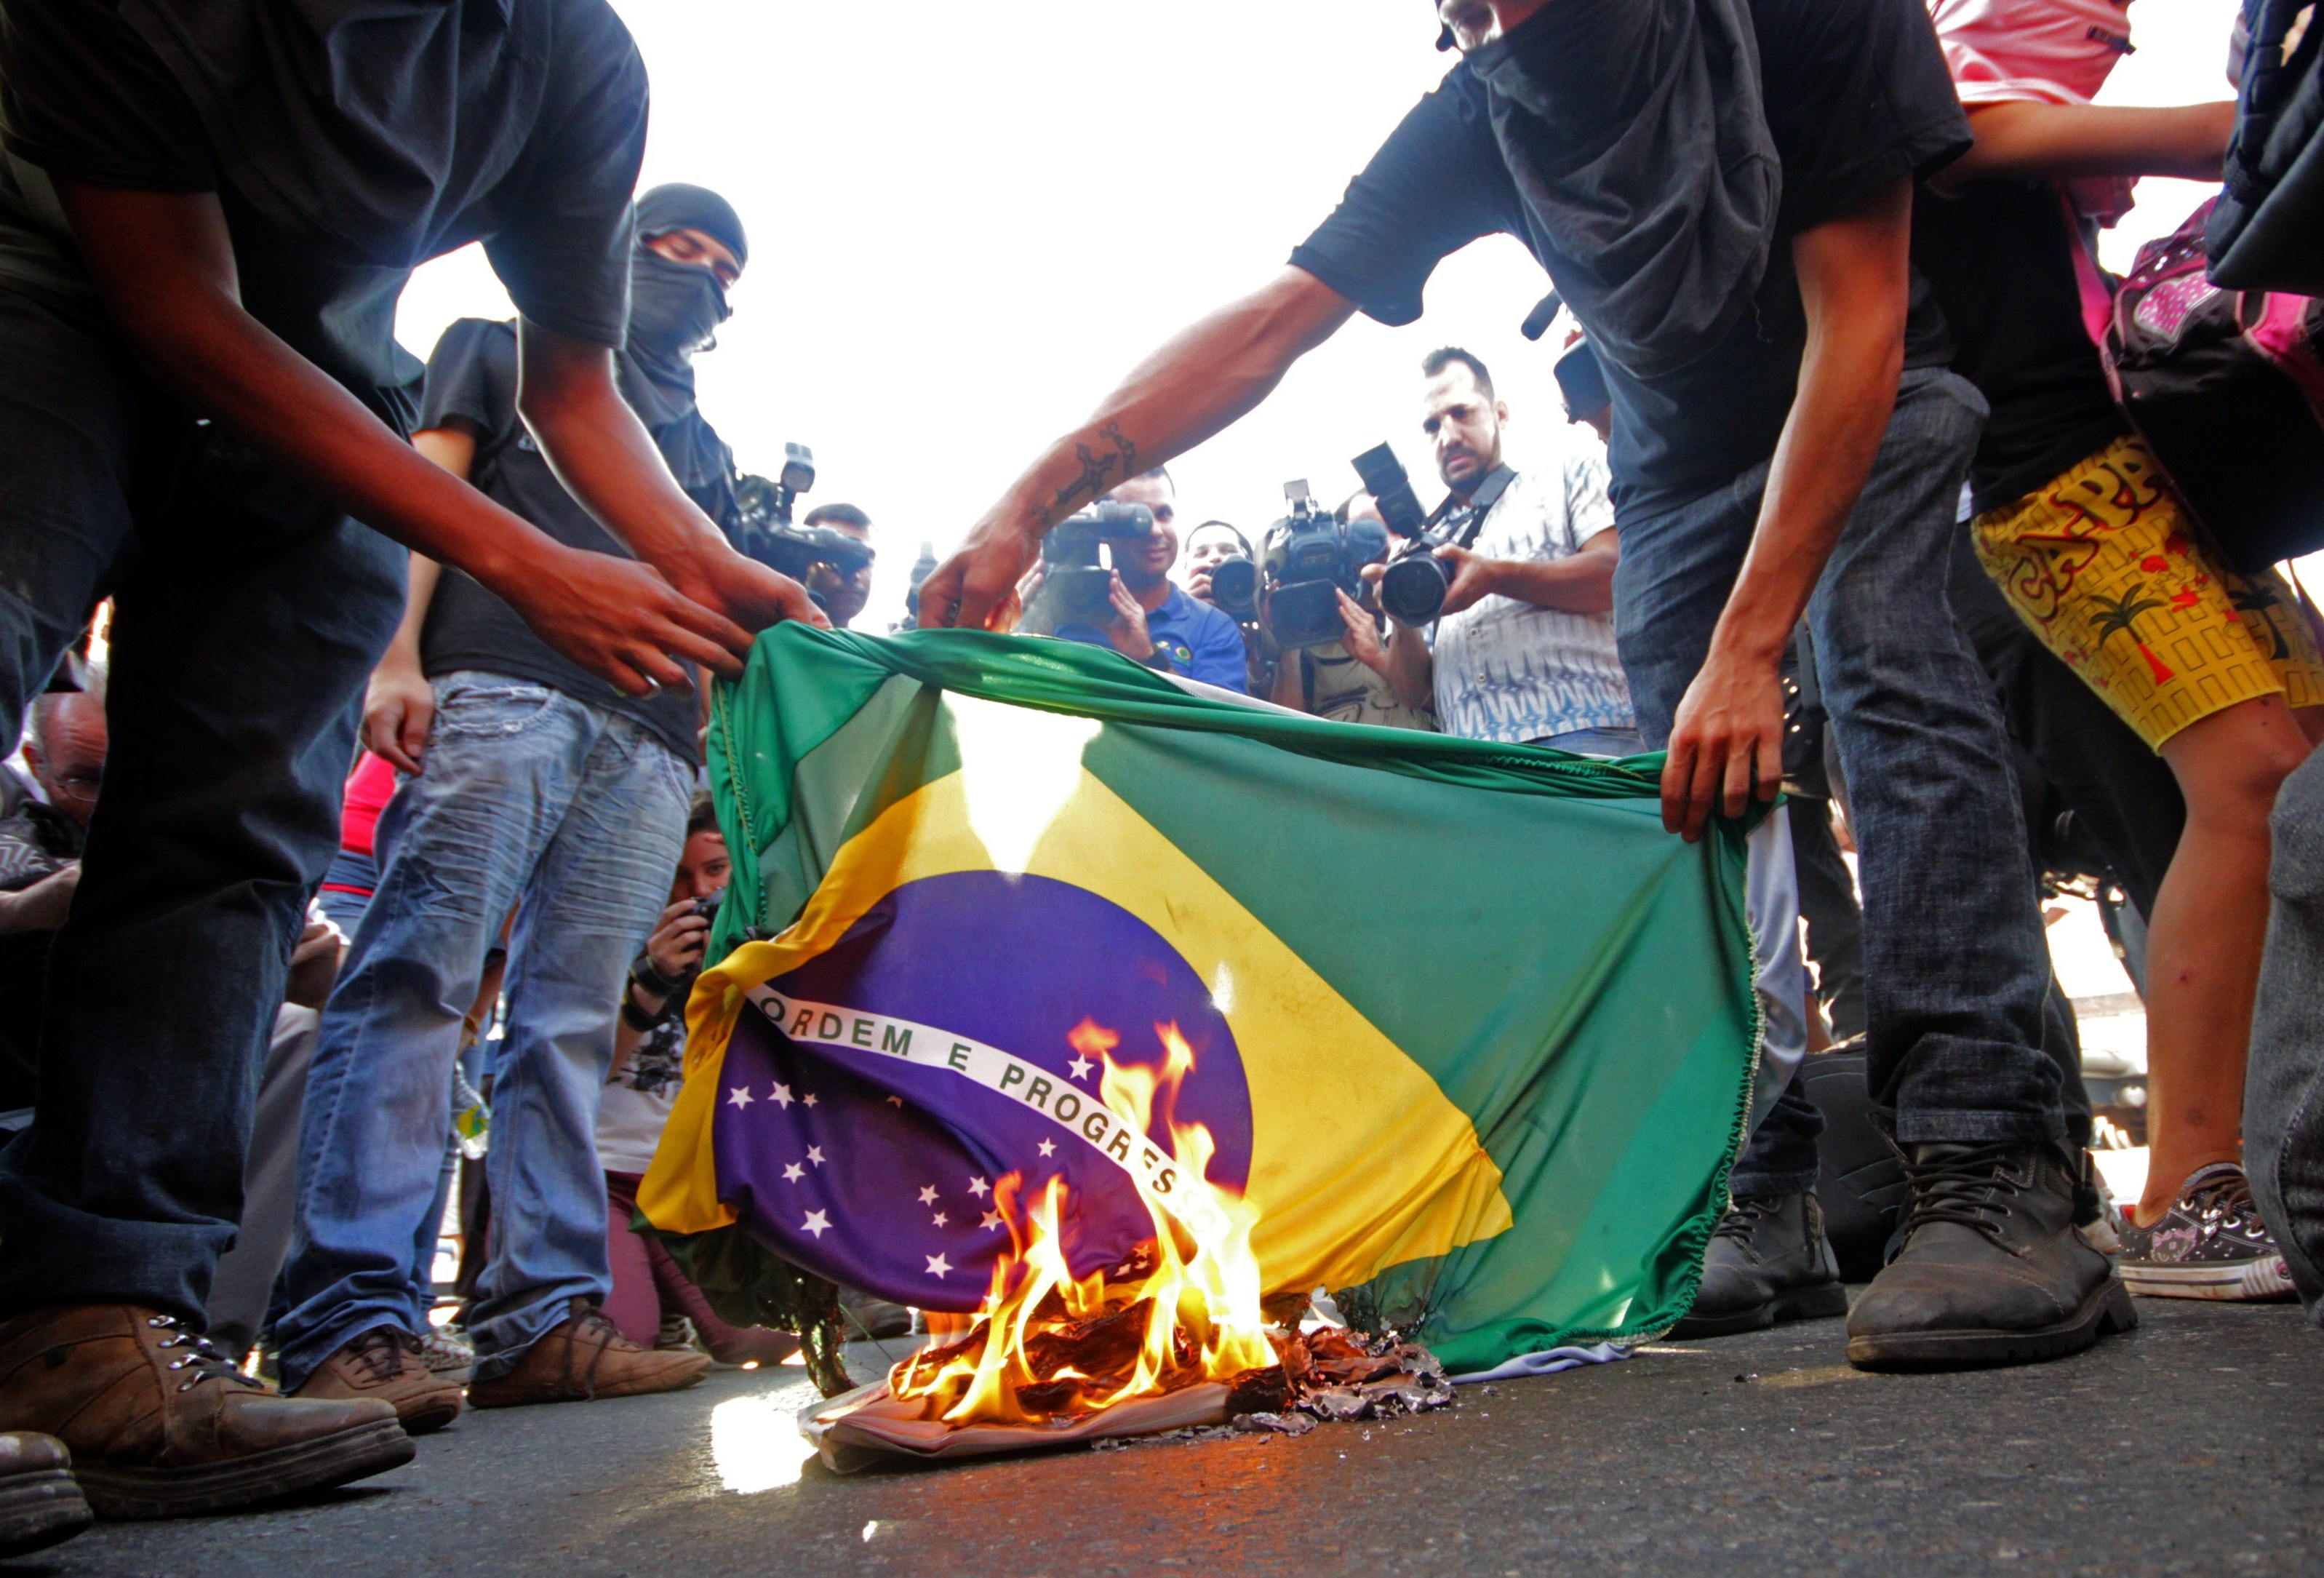 Demonstrators in Goiania, Brazil, on Tuesday burn a Brazilian flag in protest of the upcoming FIFA World Cup.